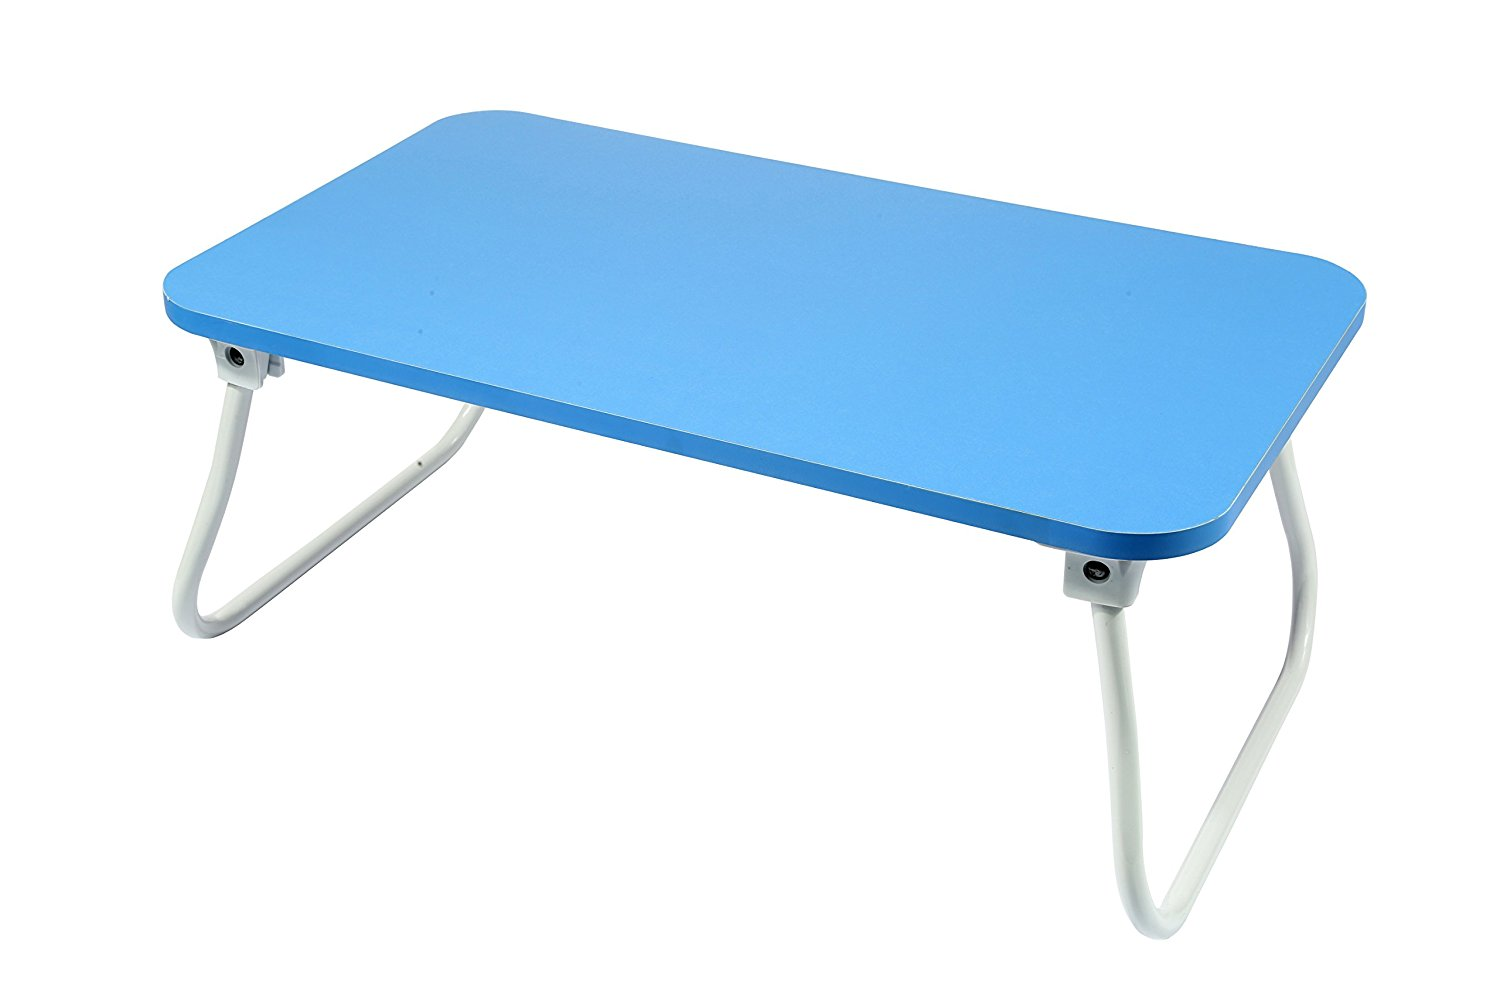 """Homebi Lap Desk Tray Table Laptop Stand Portable Bed Desk Breakfast Tray for Bed Couch and Sofa with MDF Top Board and Foldable Metal Legs (9.06""""H, Blue)"""